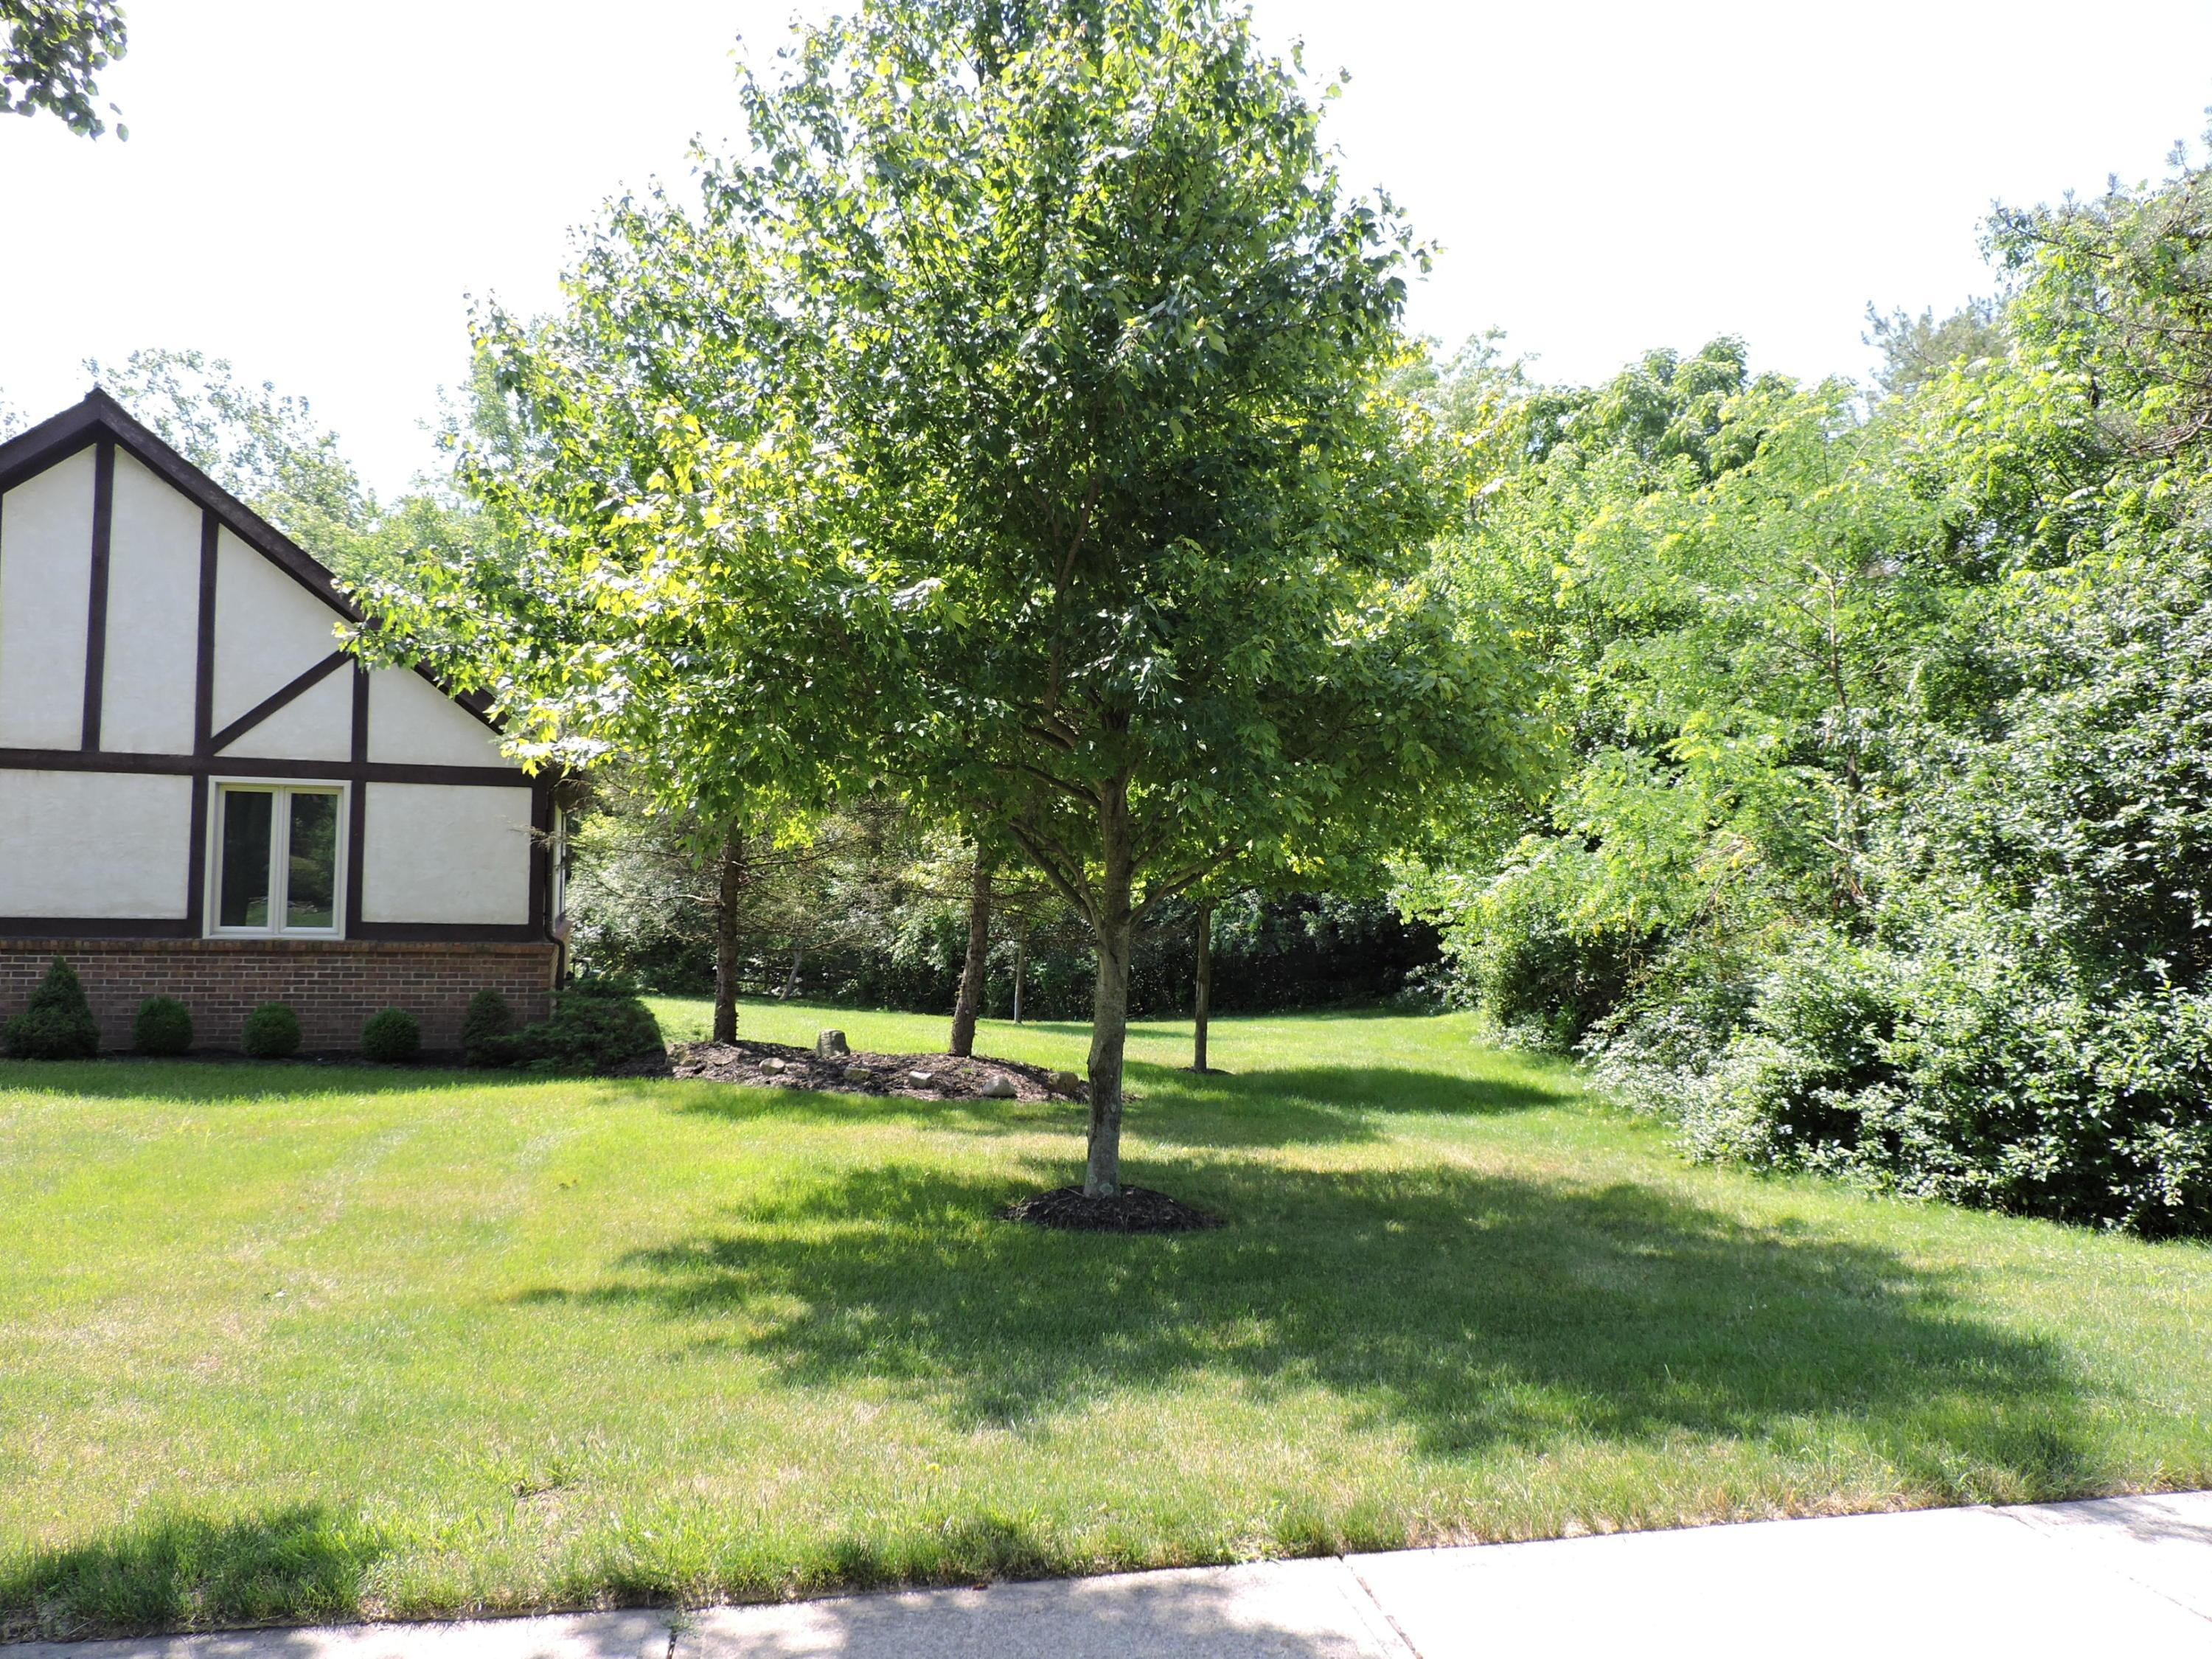 8731 Glenamoy Circle, Dublin, Ohio 43017, 3 Bedrooms Bedrooms, ,2 BathroomsBathrooms,Residential,For Sale,Glenamoy,220020957